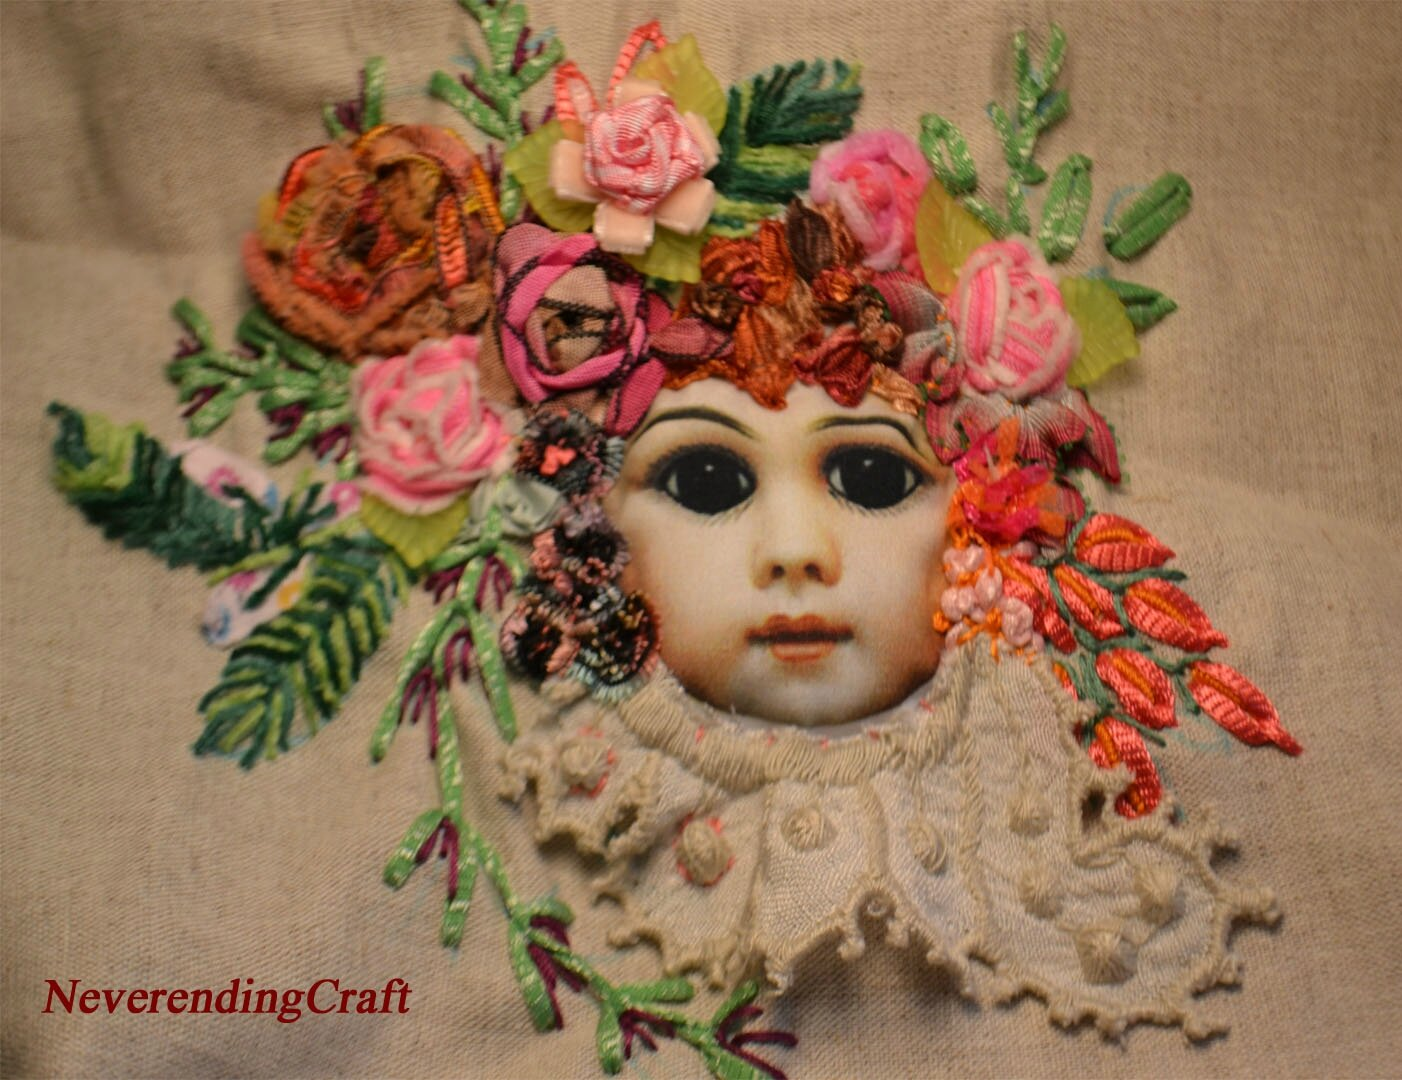 Visage_broderie_NeverendingCraft1bis